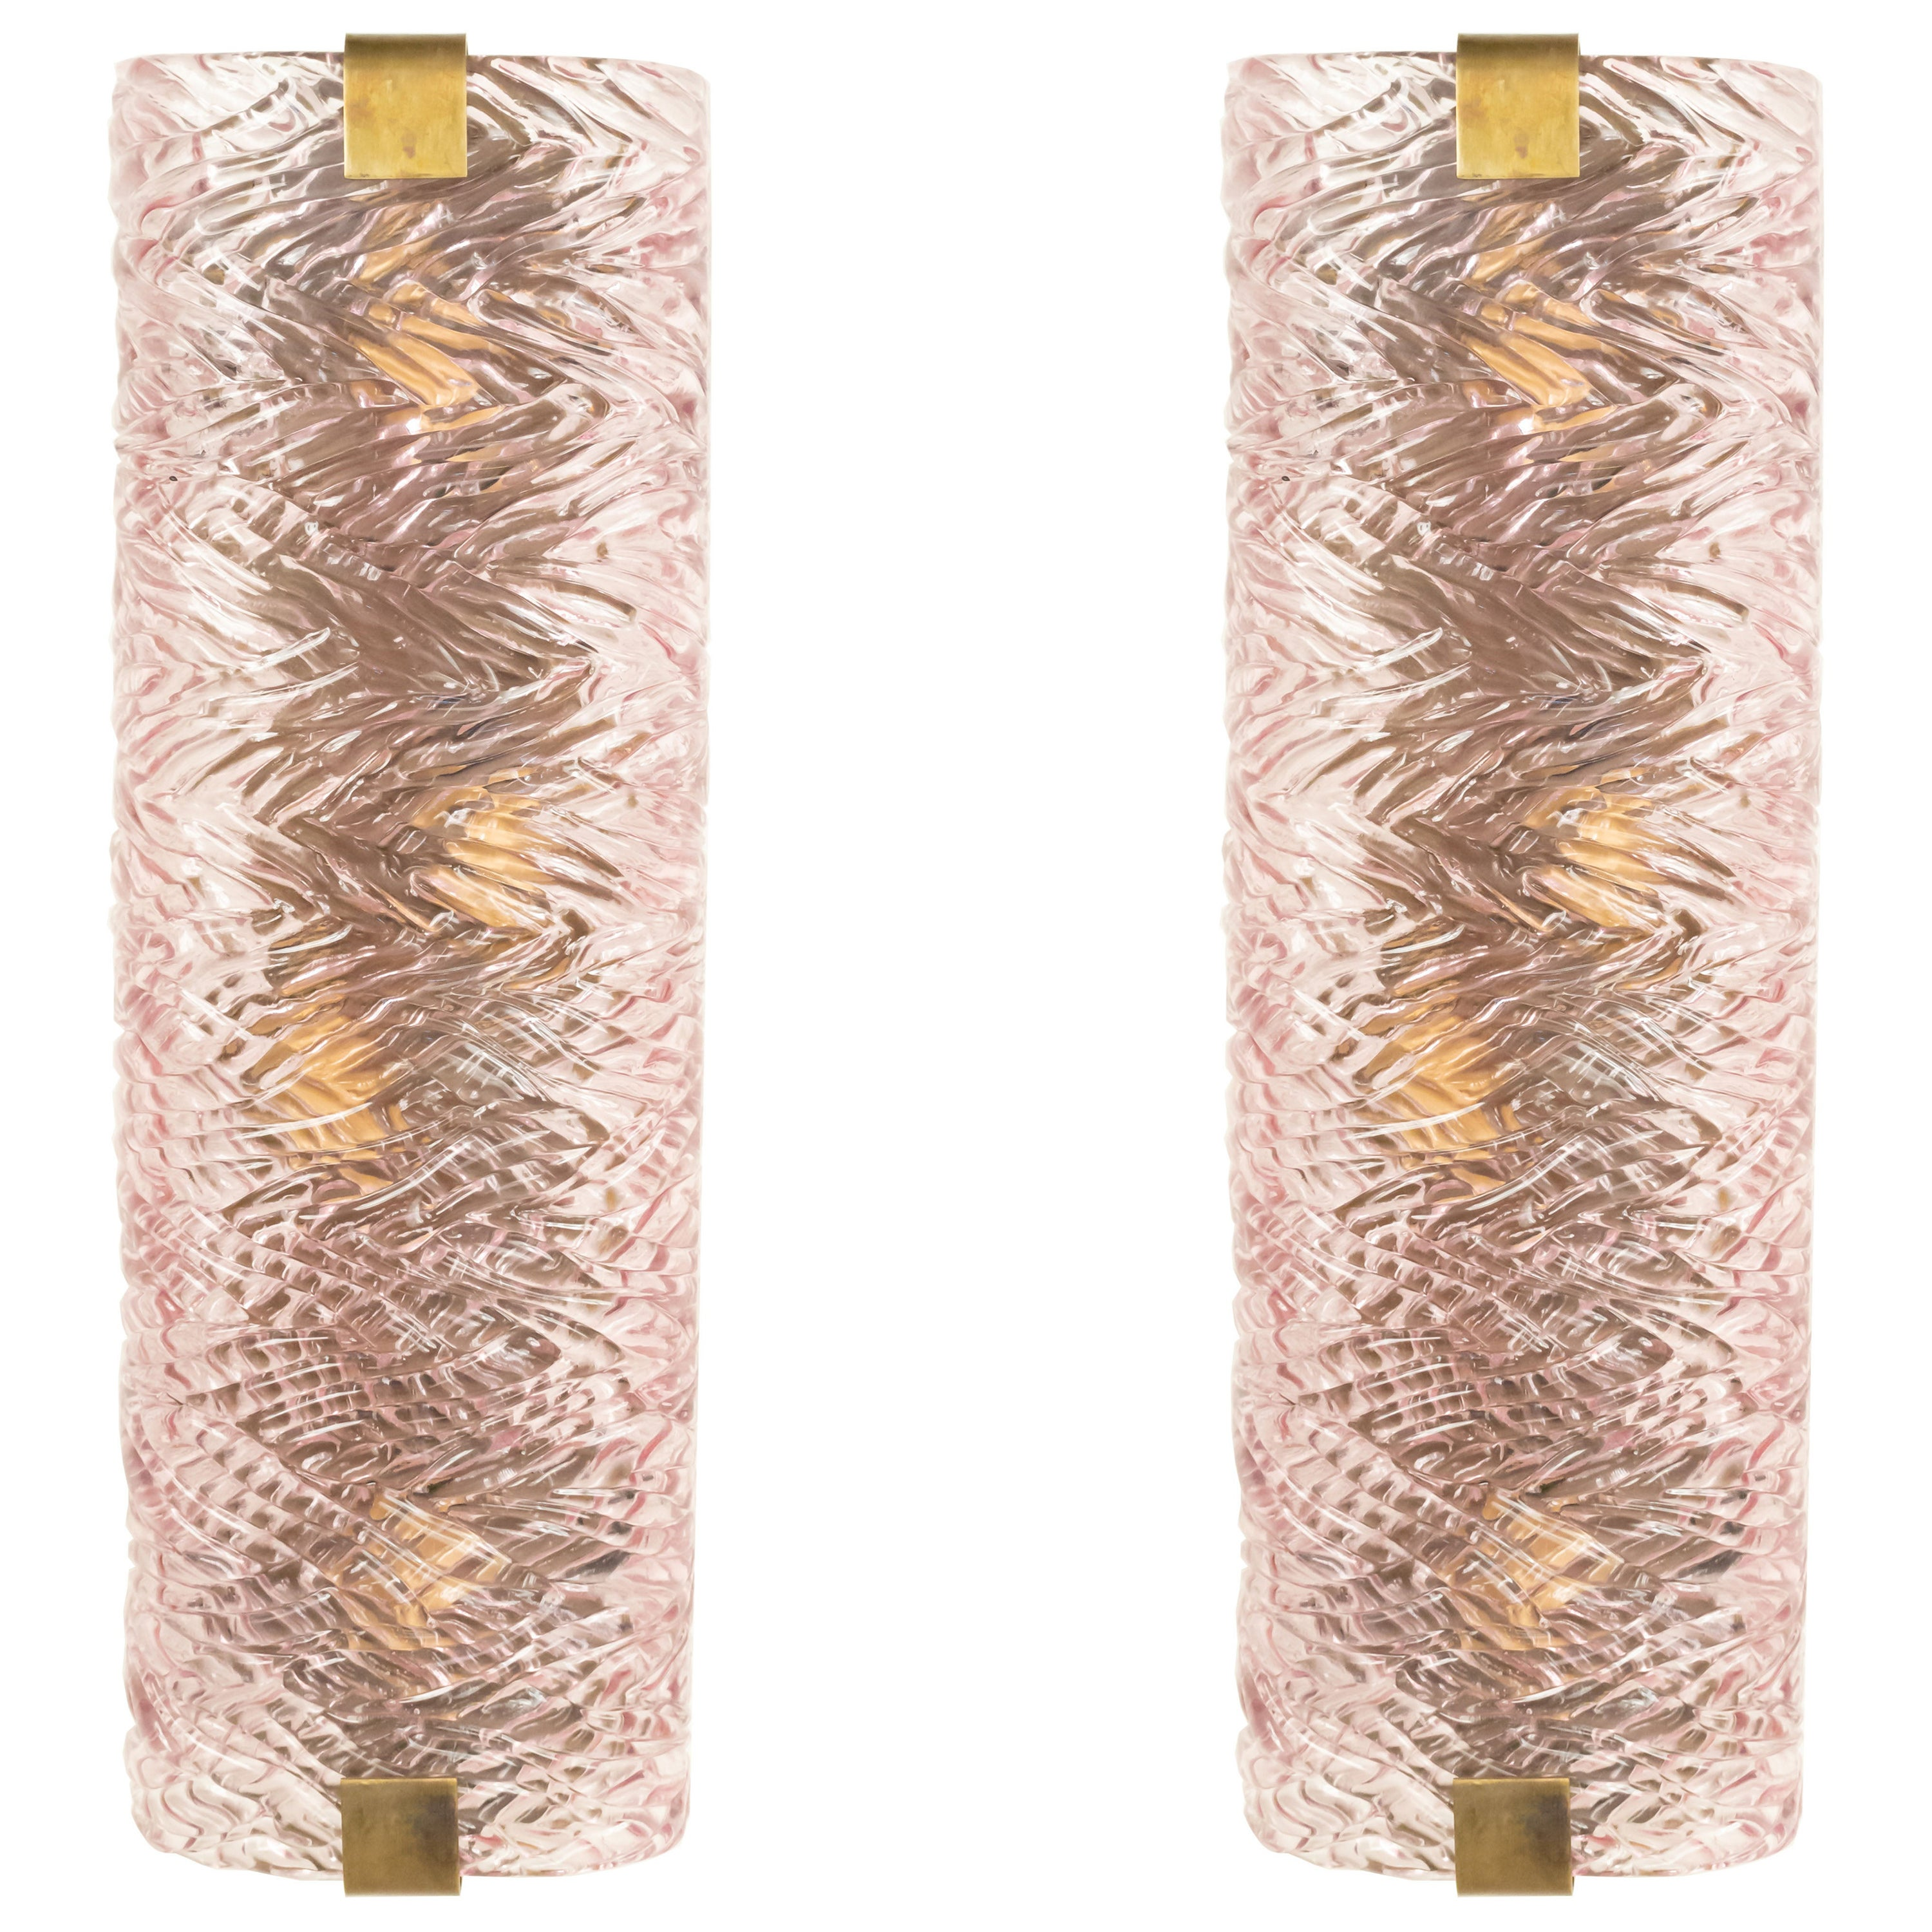 Midcentury Italian Cylindrical Pink Texturized Glass Sconces